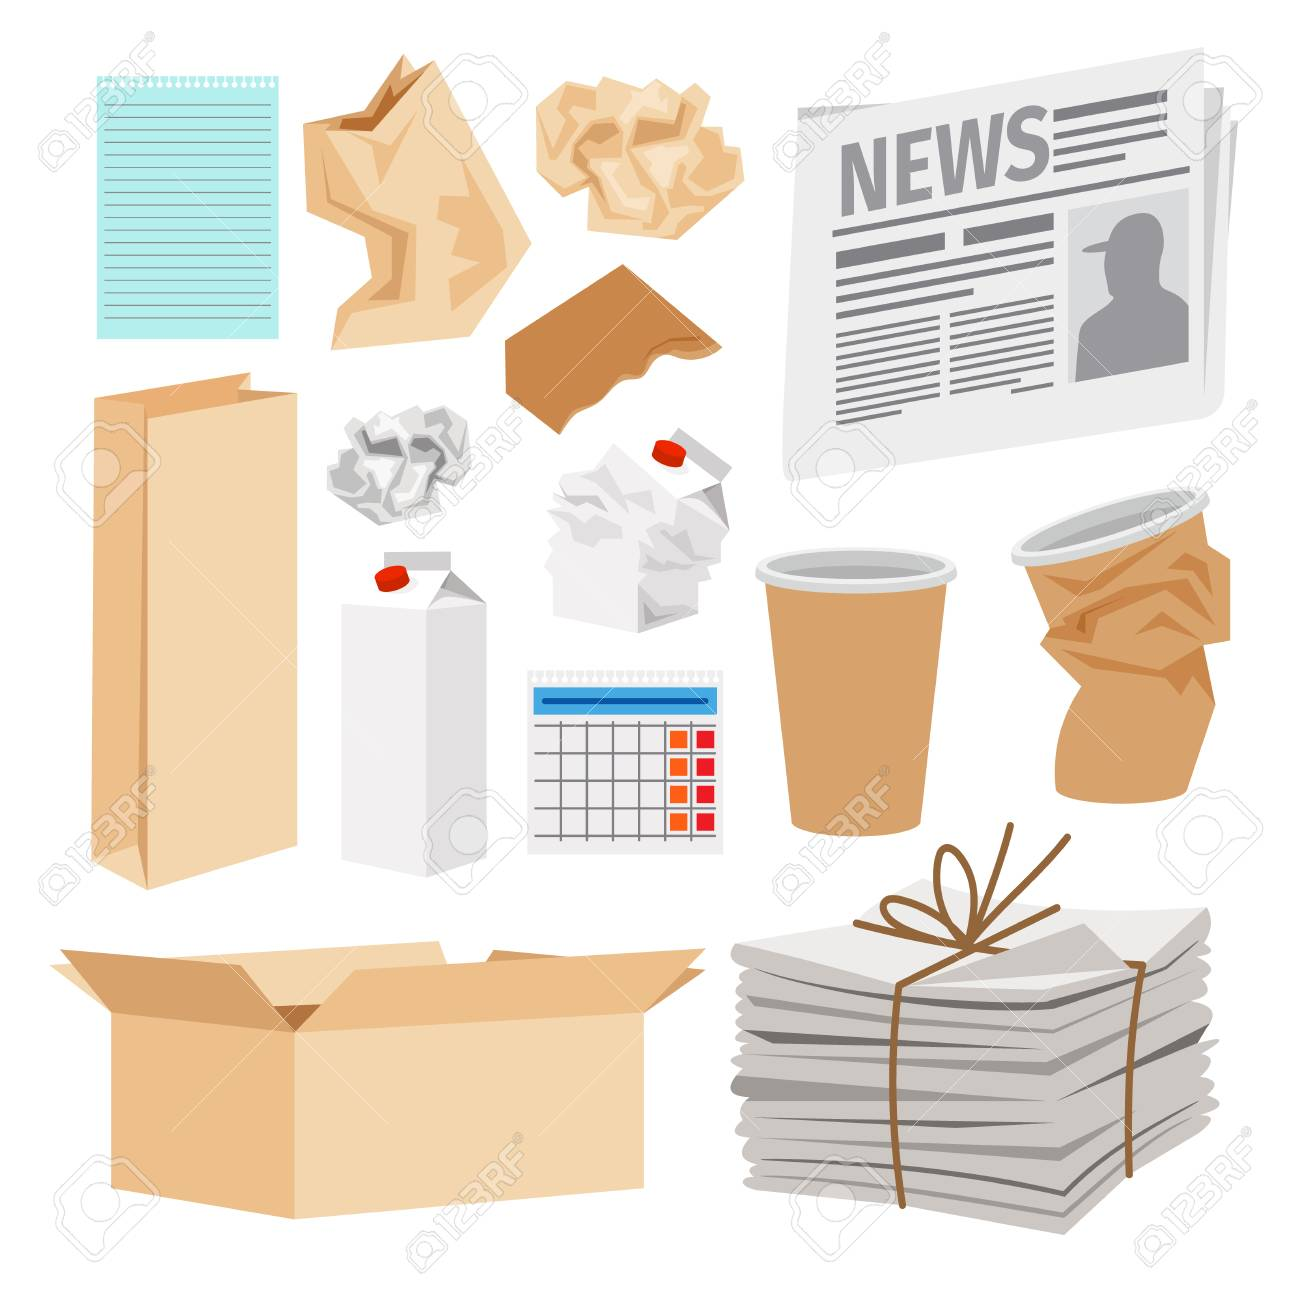 Paper trash icons collection. Vector icons of carton boxes, paper cups, stack of newspapers, milk packages - 88351403